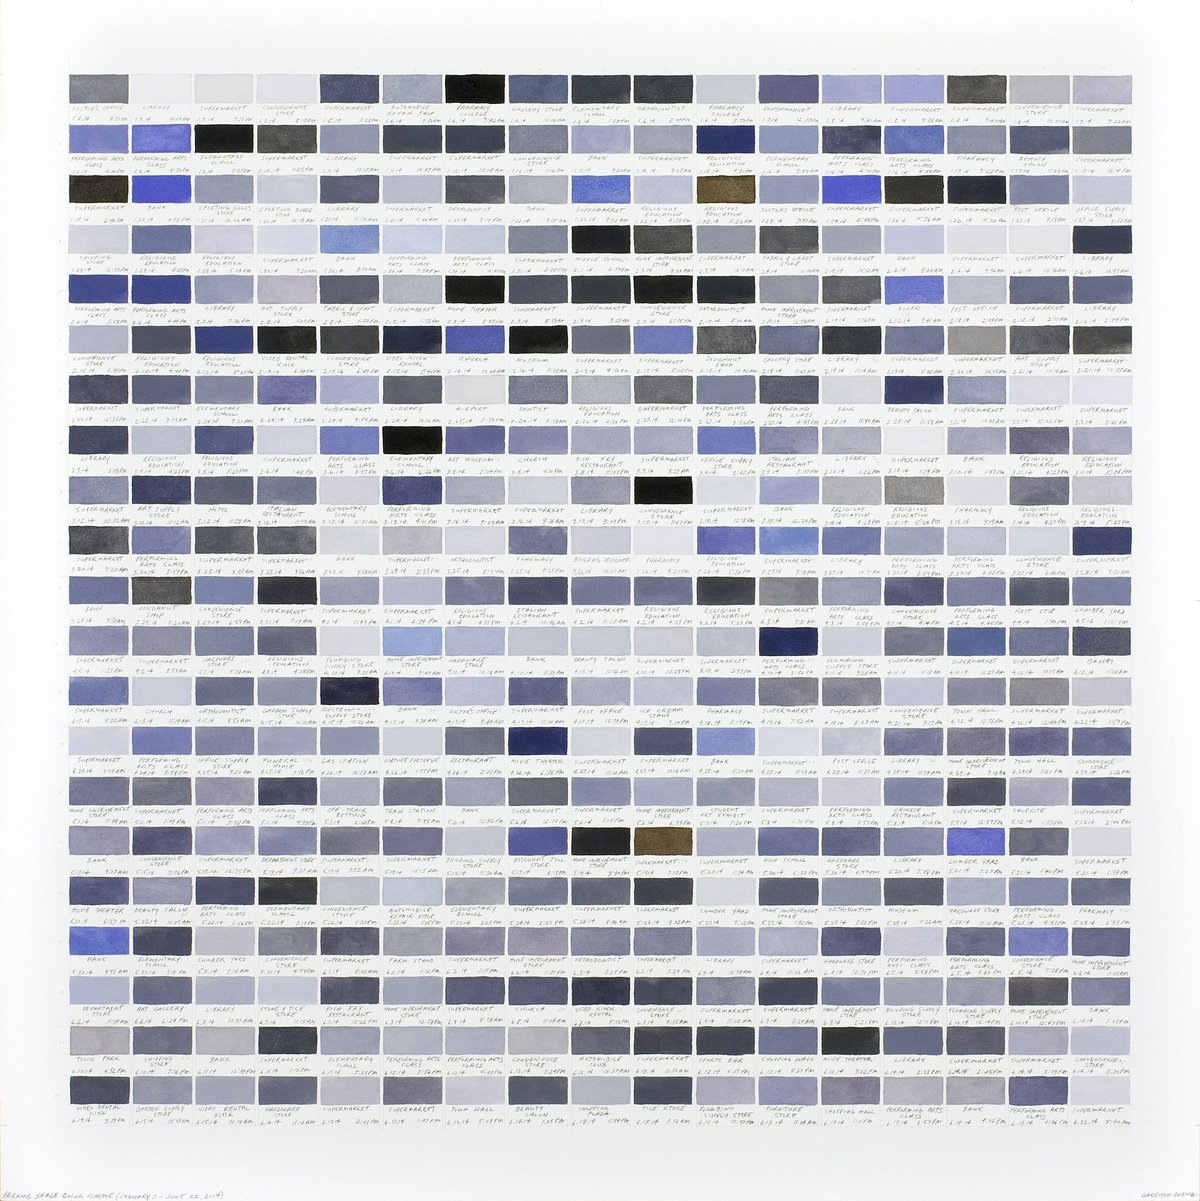 Richard Garrison, Parking Space Color Scheme (January 2 – June 22, 2014), 2015-2016